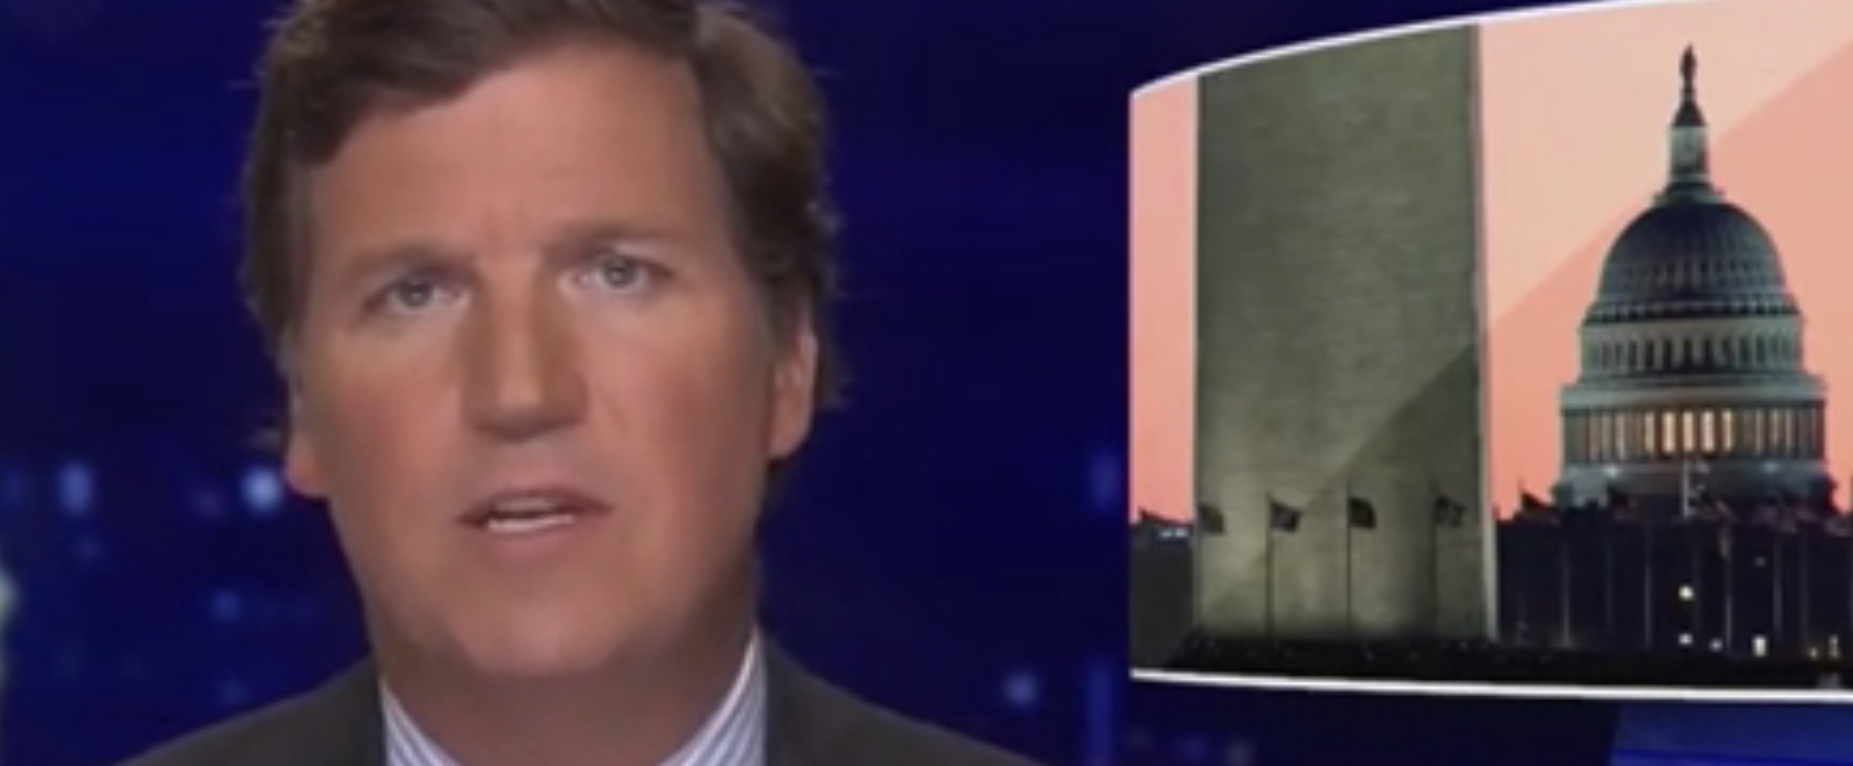 Tucker Carlson Tells Government To 'Stop Lying To Us' During COVID-19 Crisis